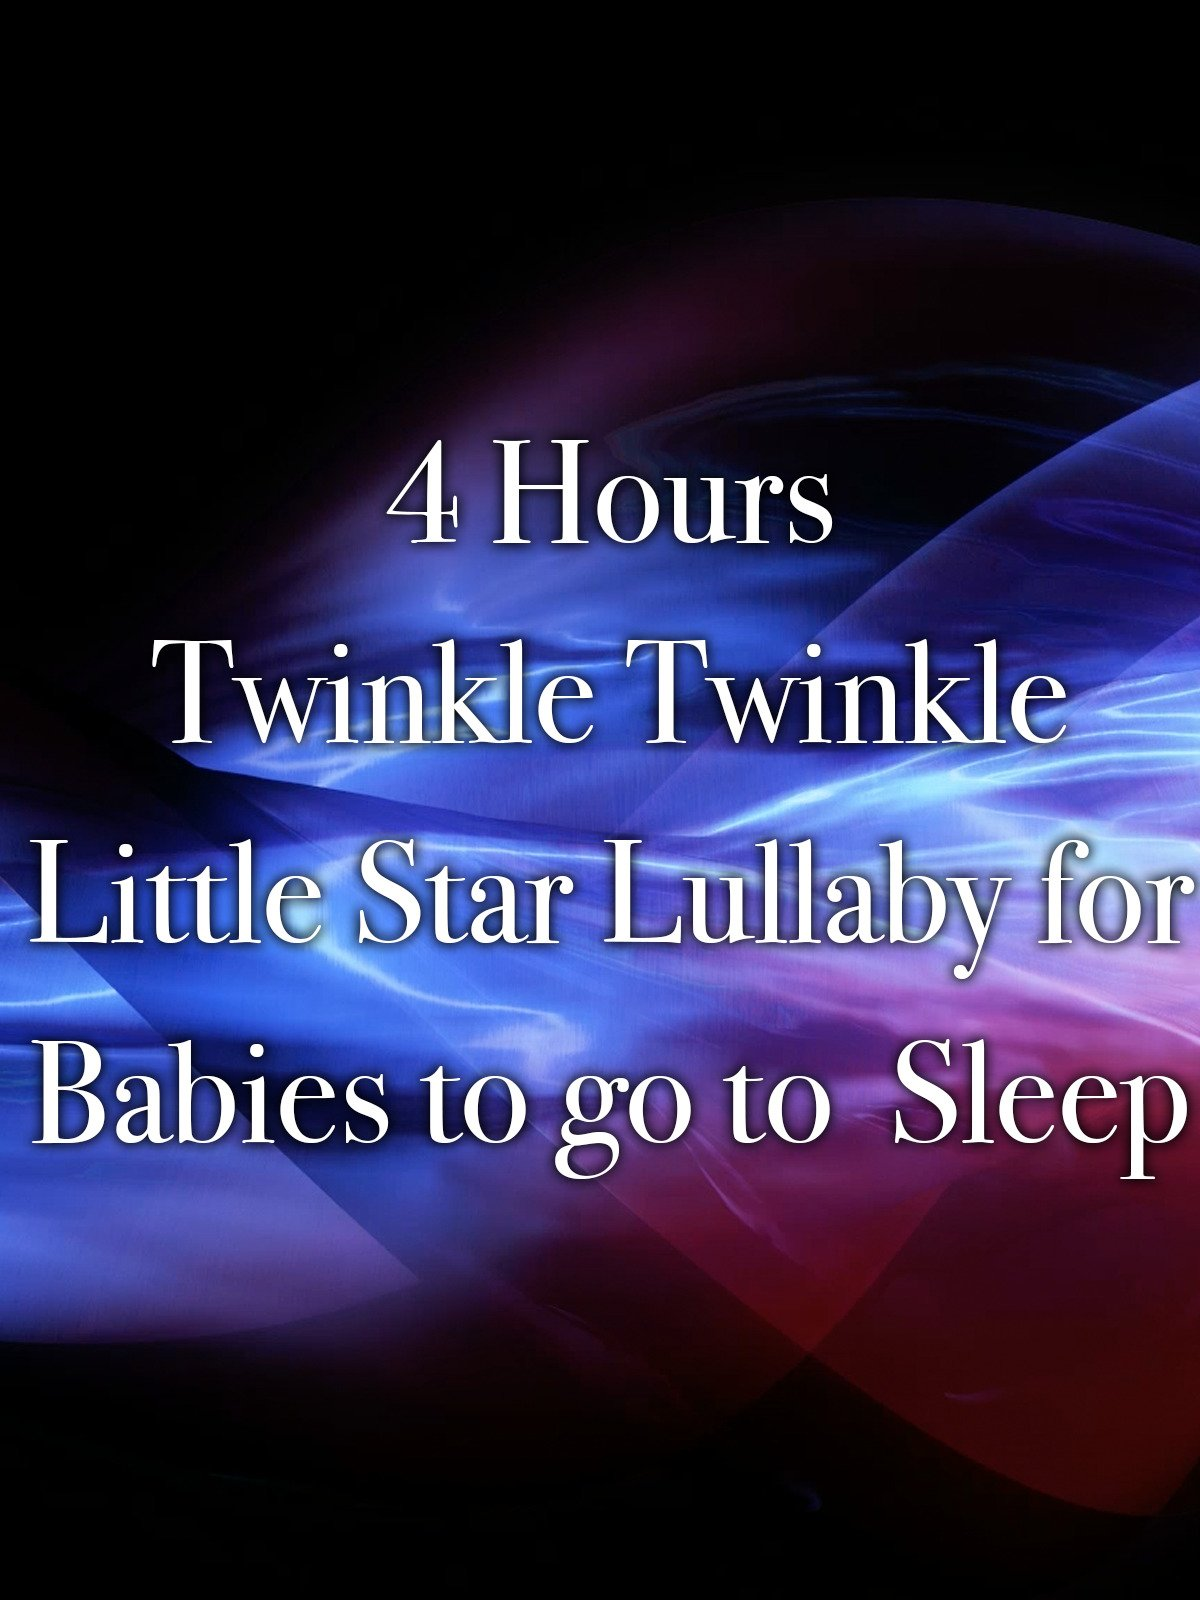 4 Hours Twinkle Twinkle Little Star Lullaby for Babies to go to Sleep